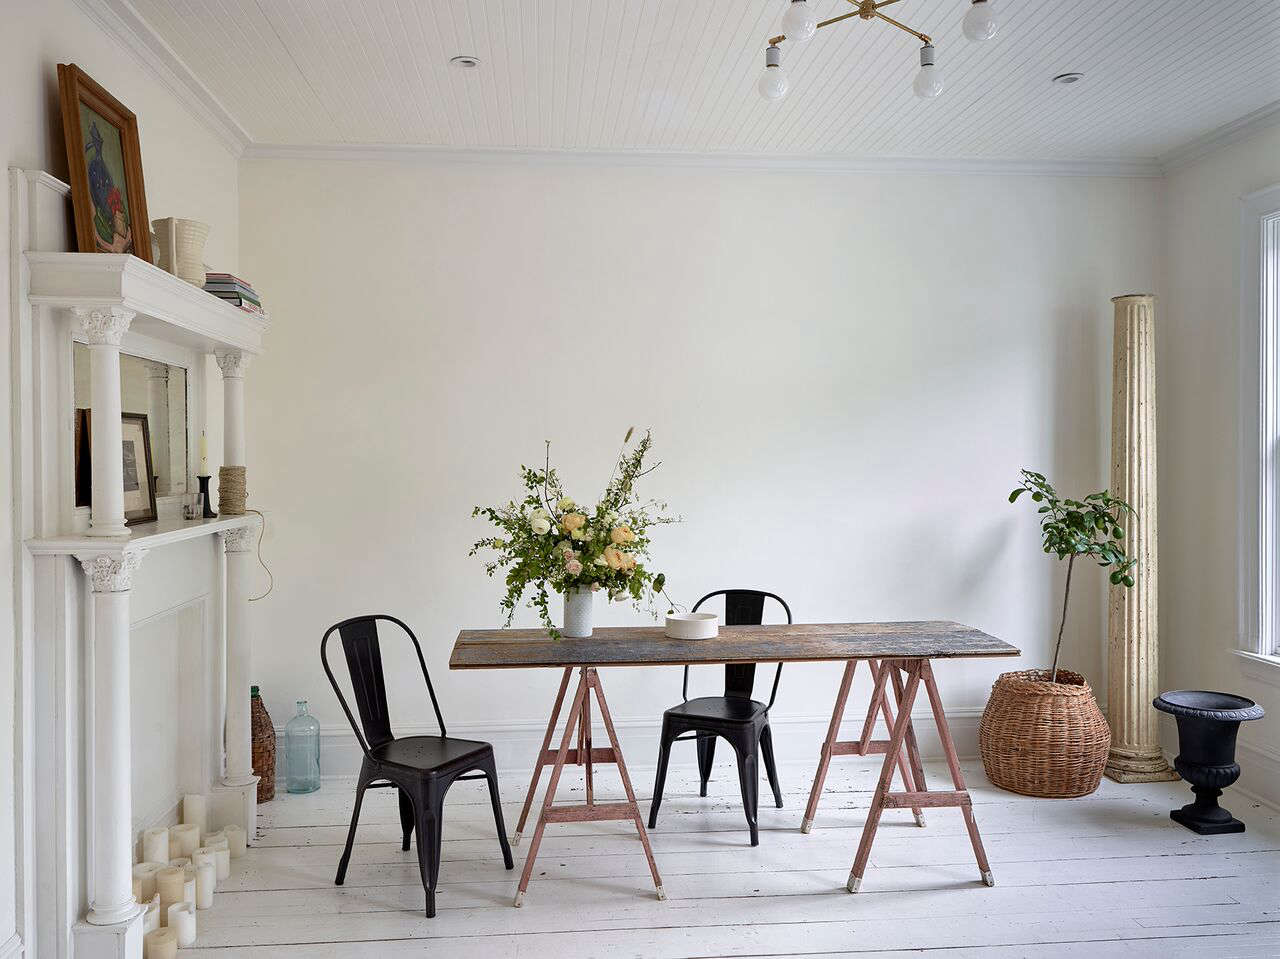 Small Space Diy 7 Sawhorse Dining Tables For Impromptu Gatherings Remodelista